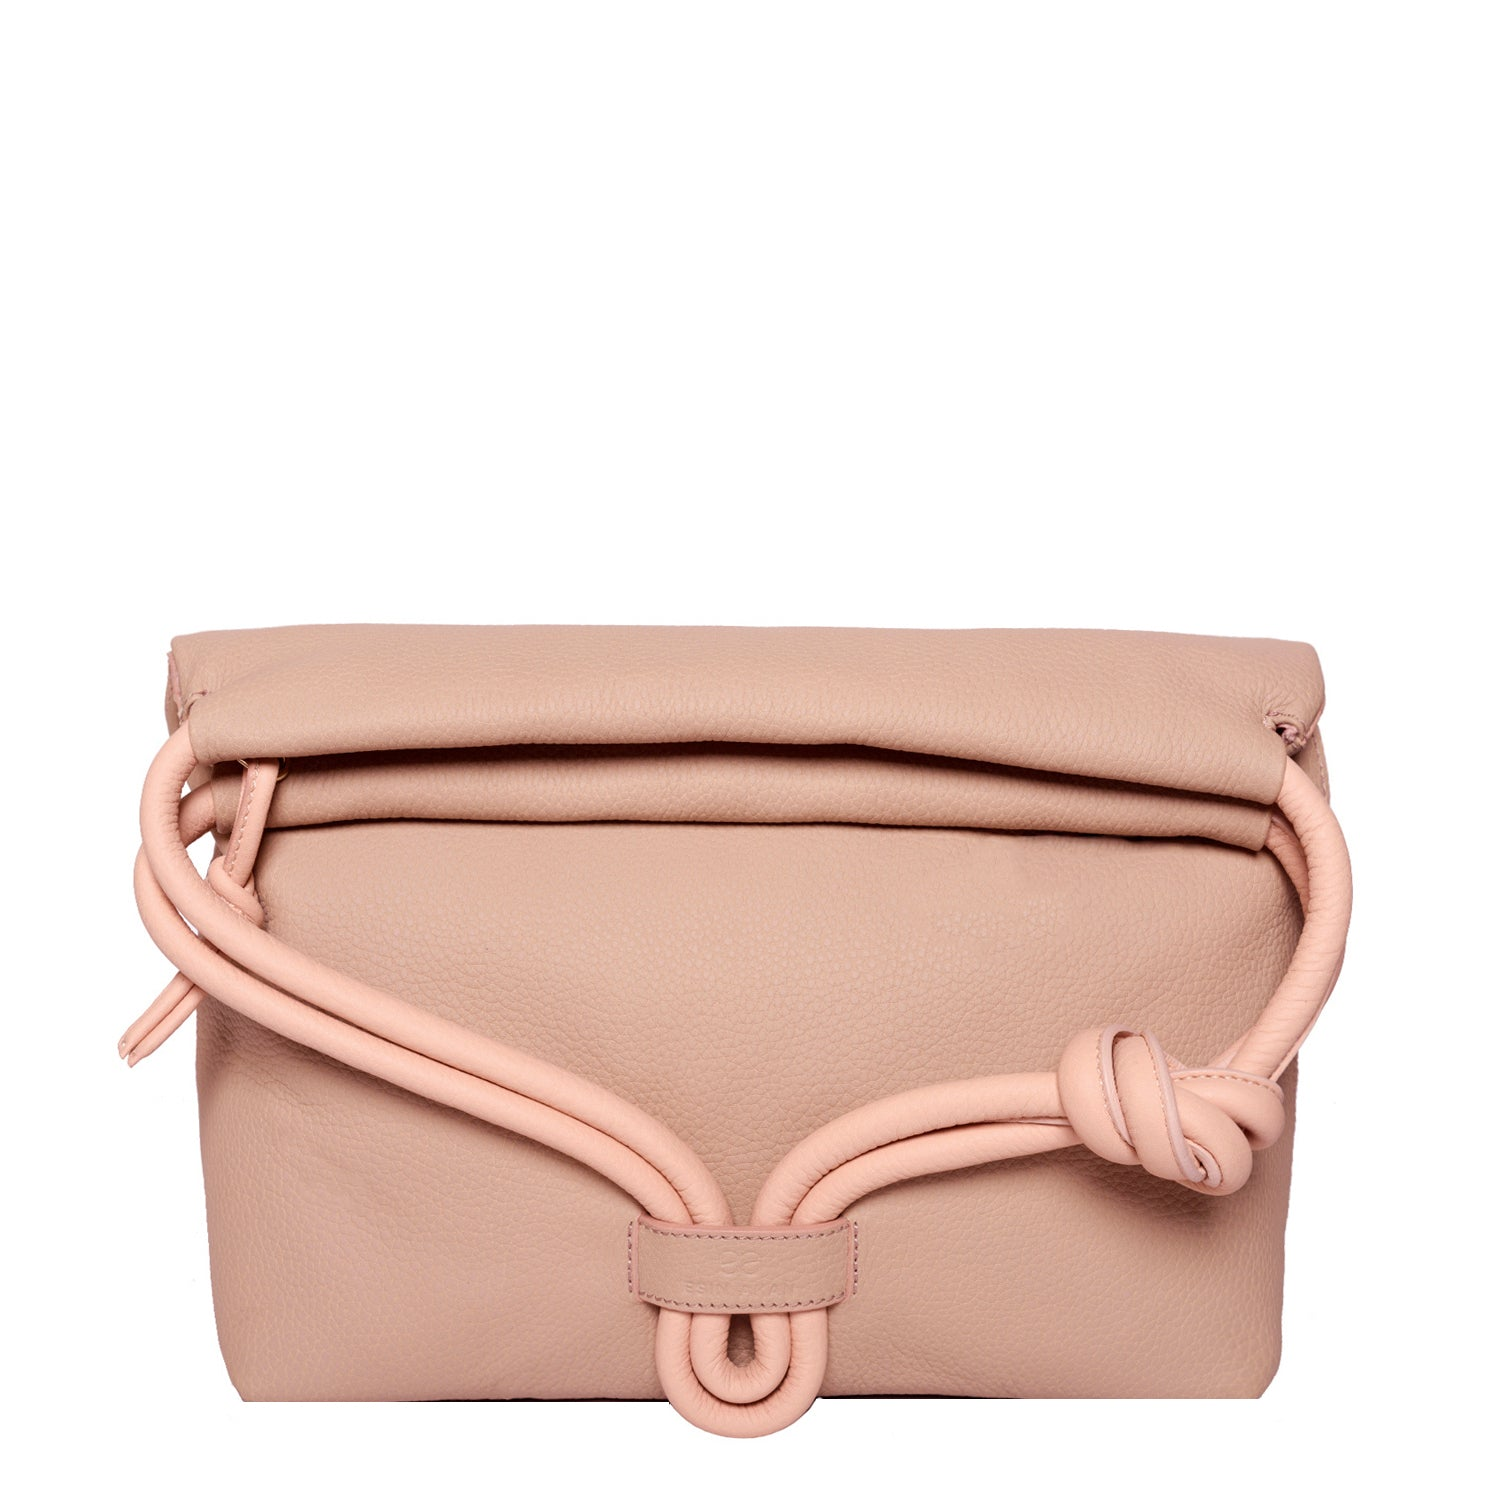 A convertible leather pink shoulder bag for women with a knot detail on the strap shown as a clutch bag, front image.